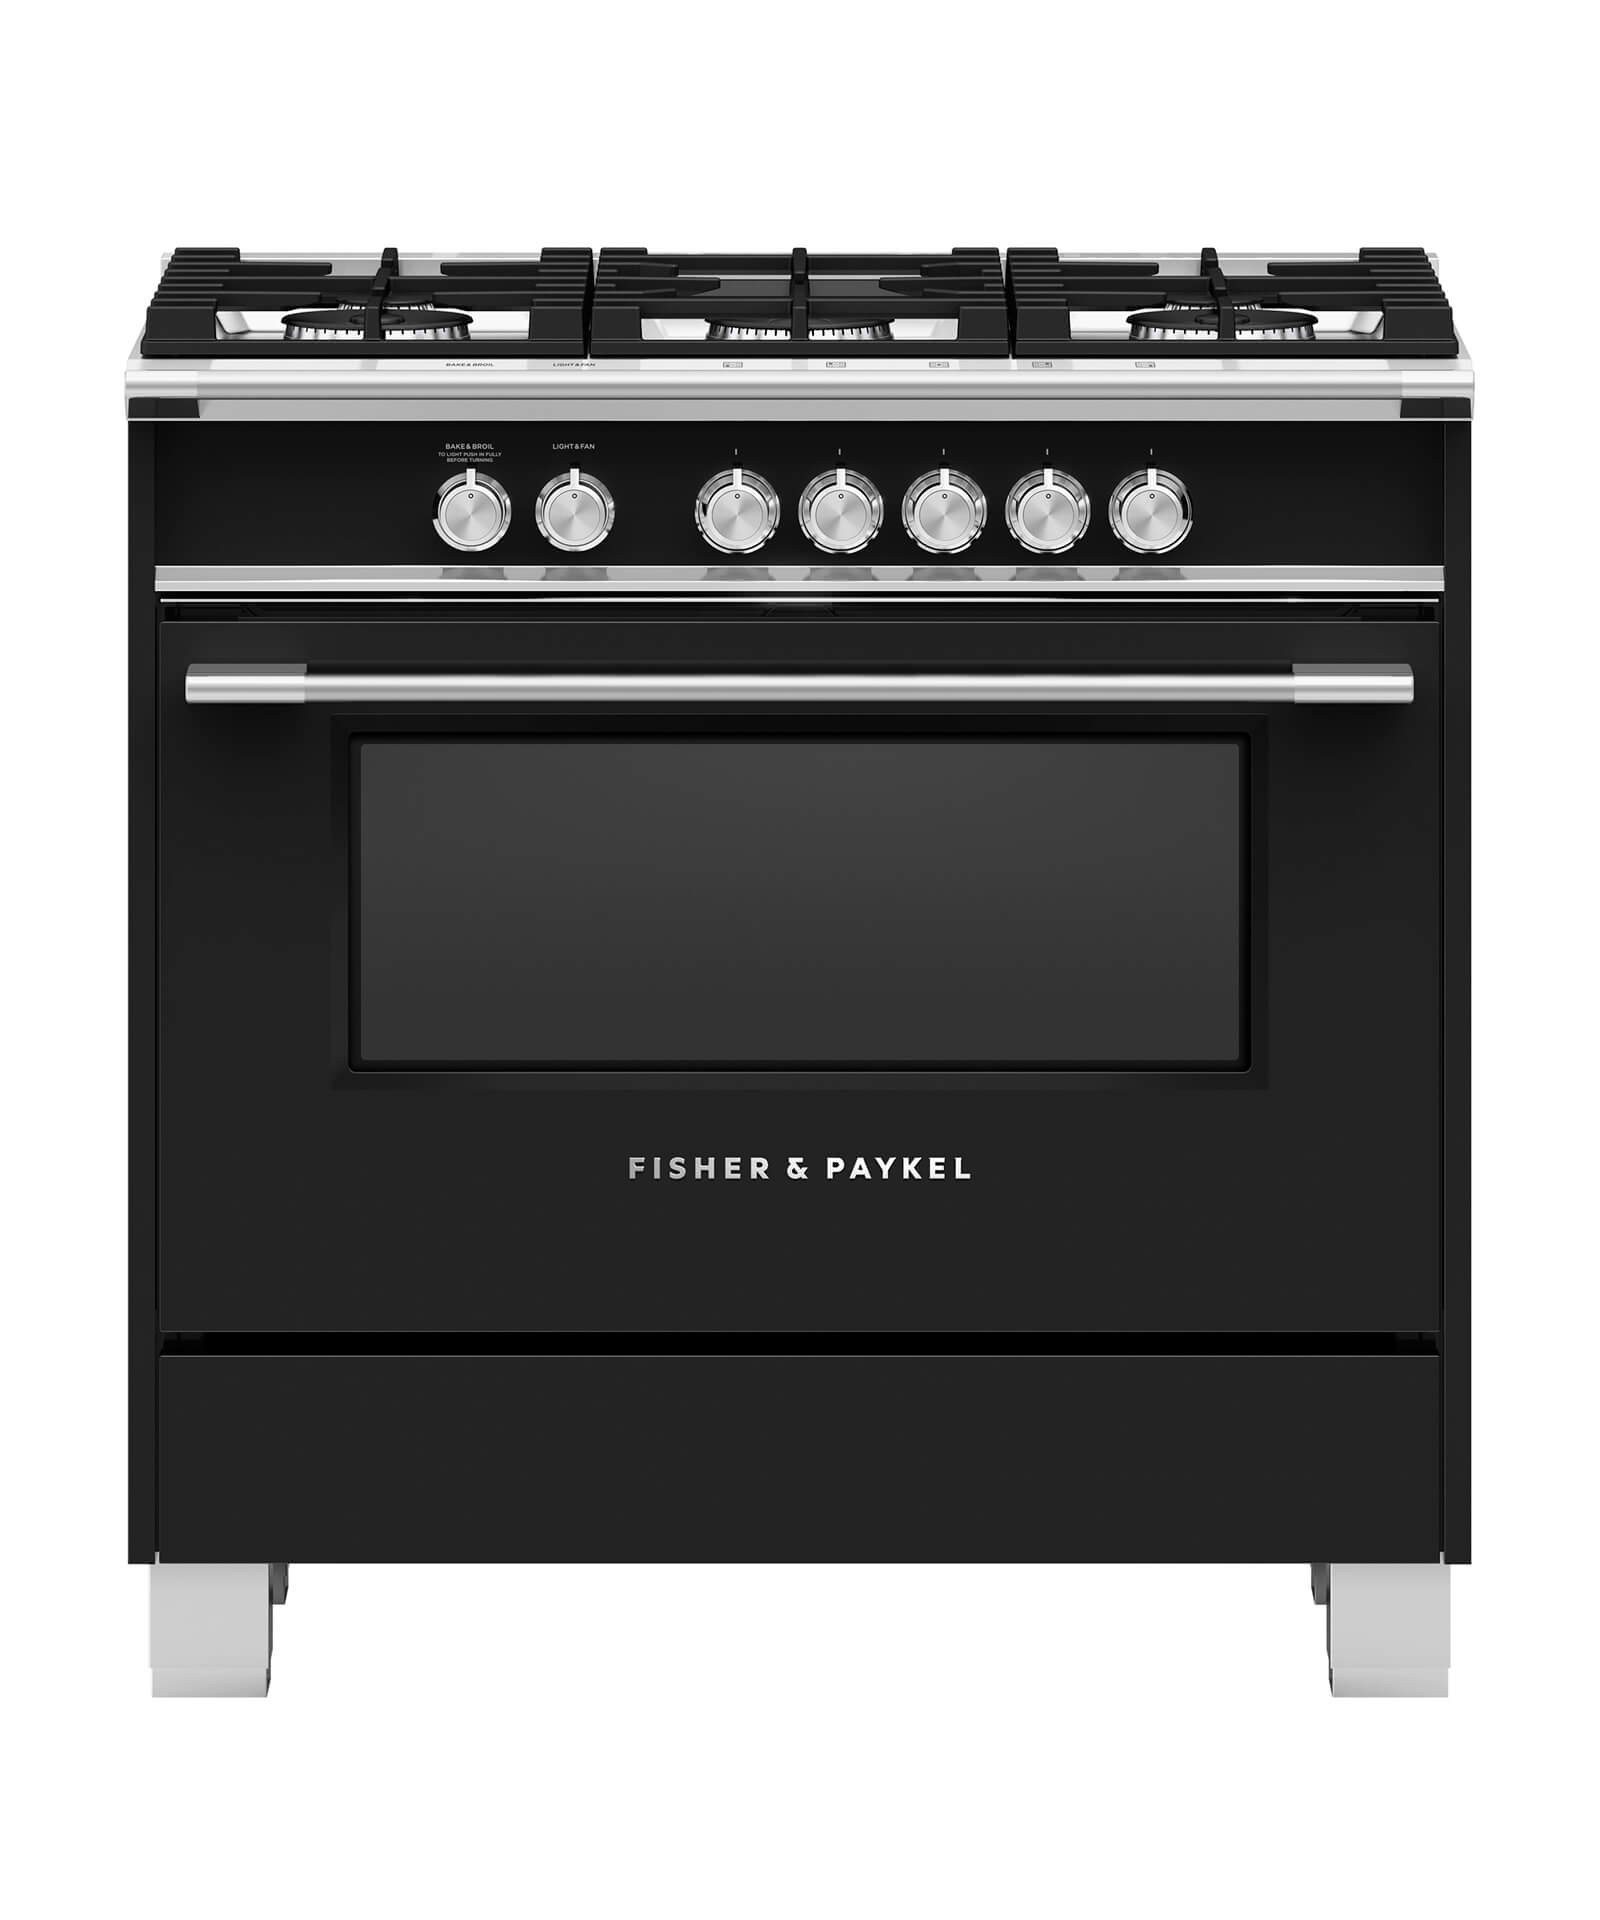 Model: OR36SCG4B1 | Gas Range, 36""